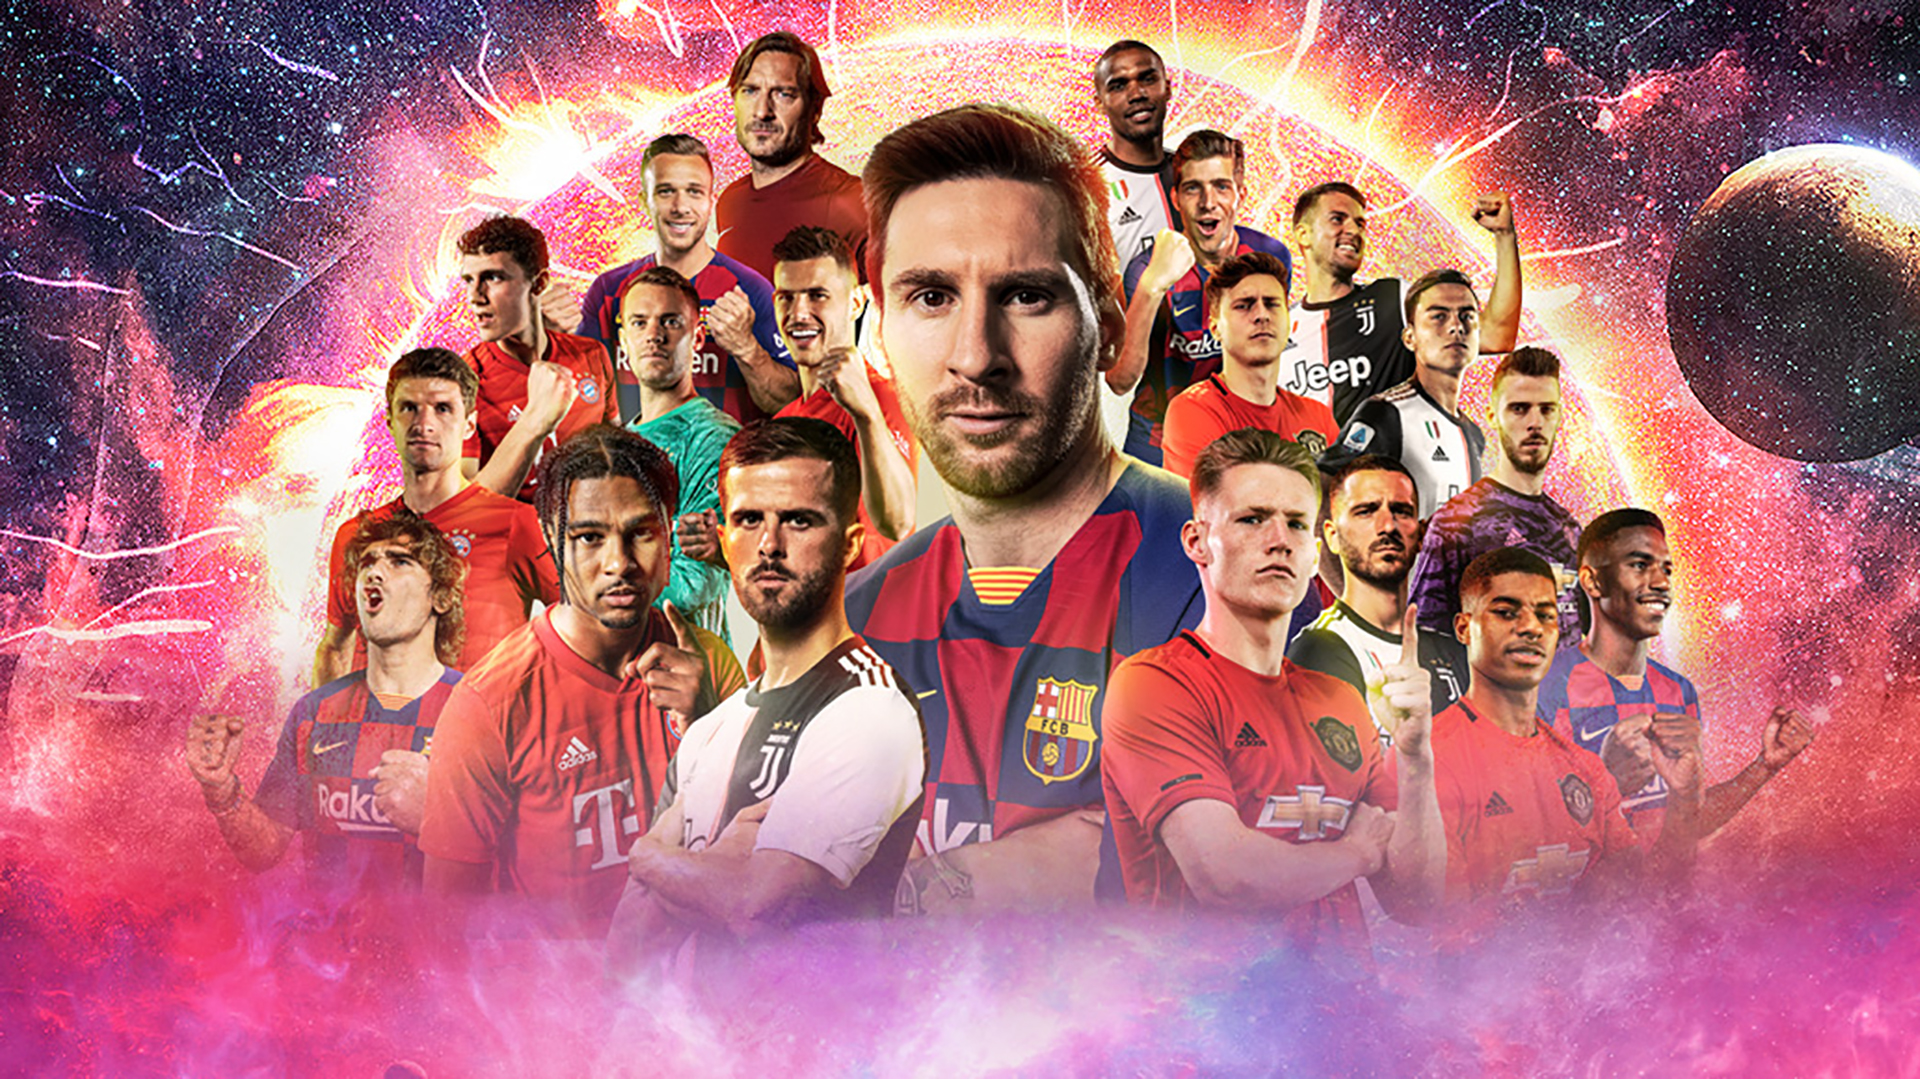 Konami is adding more and more starpower to their PES franchise every year.